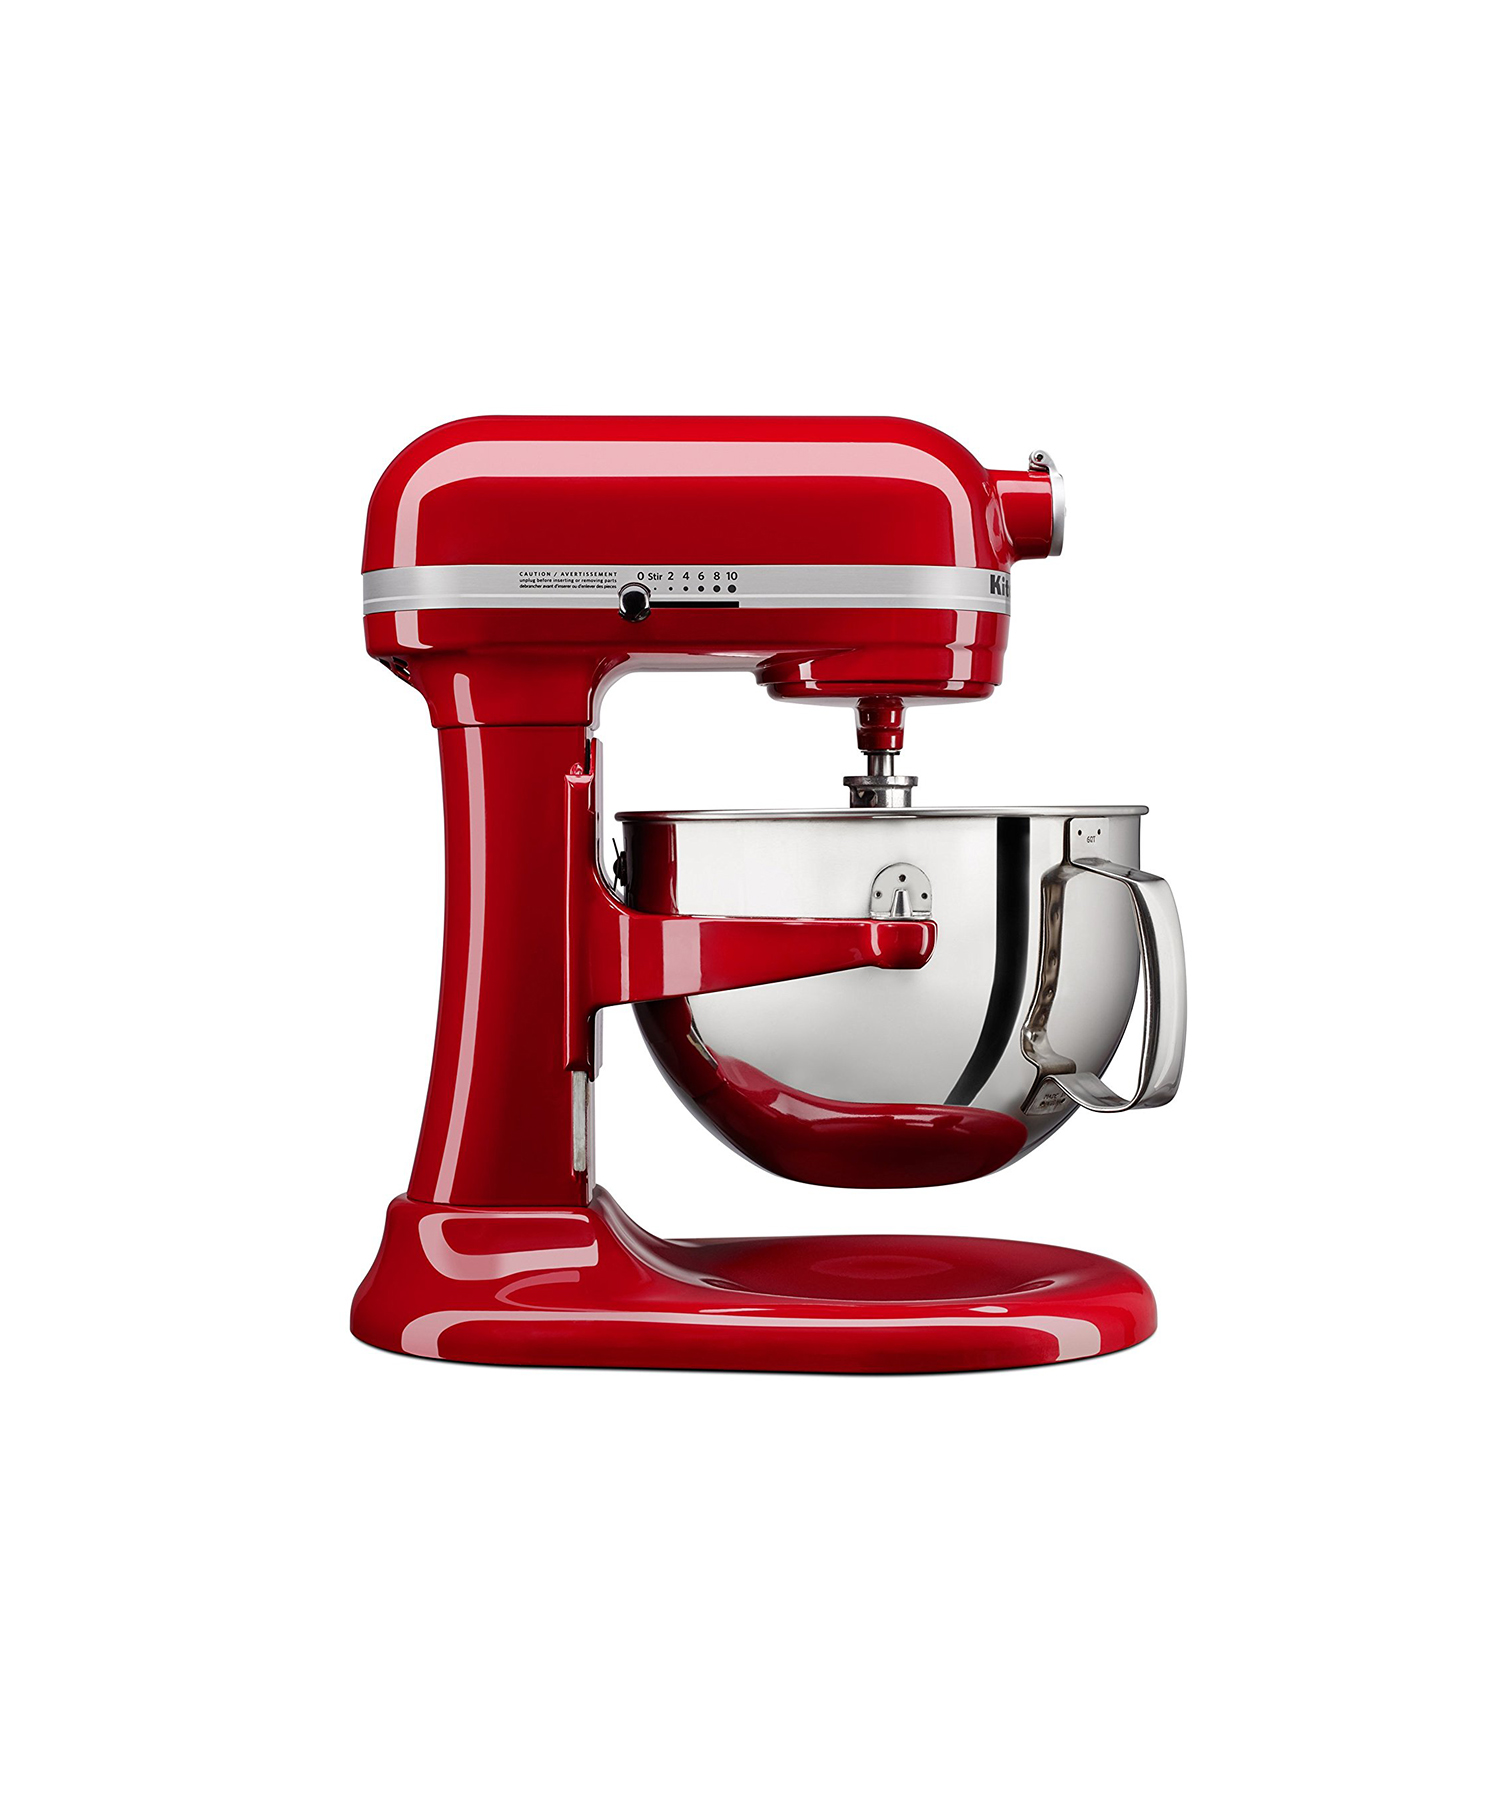 Amazon\'s Super Cheap Deal on KitchenAid Stand Mixers | Real Simple